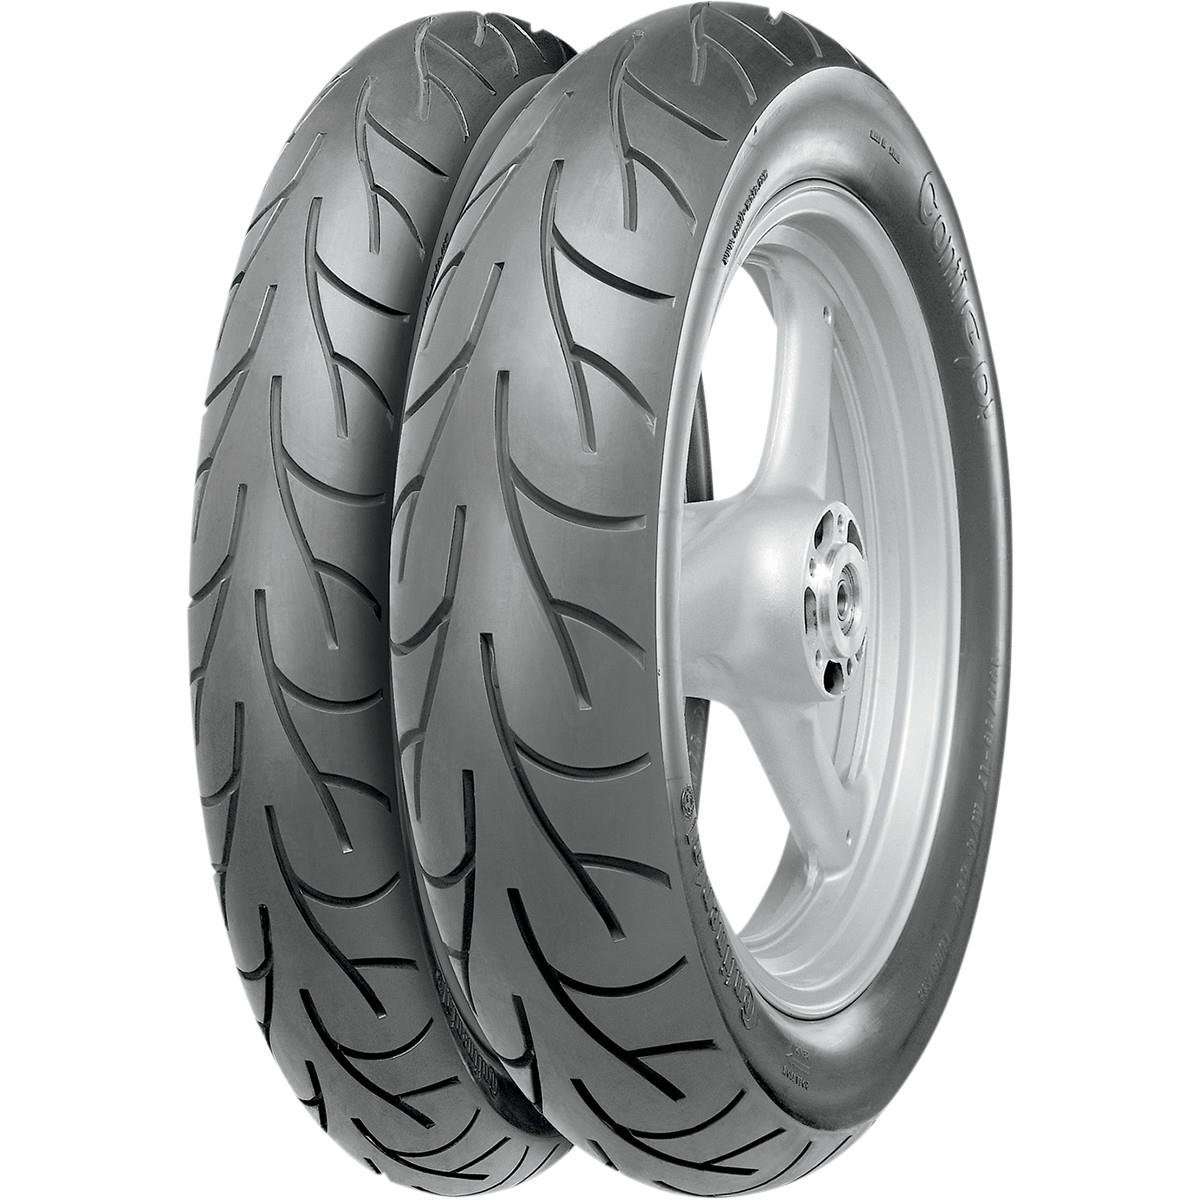 Continental Conti Go Rear 140/80-17 Motorcycle Tire